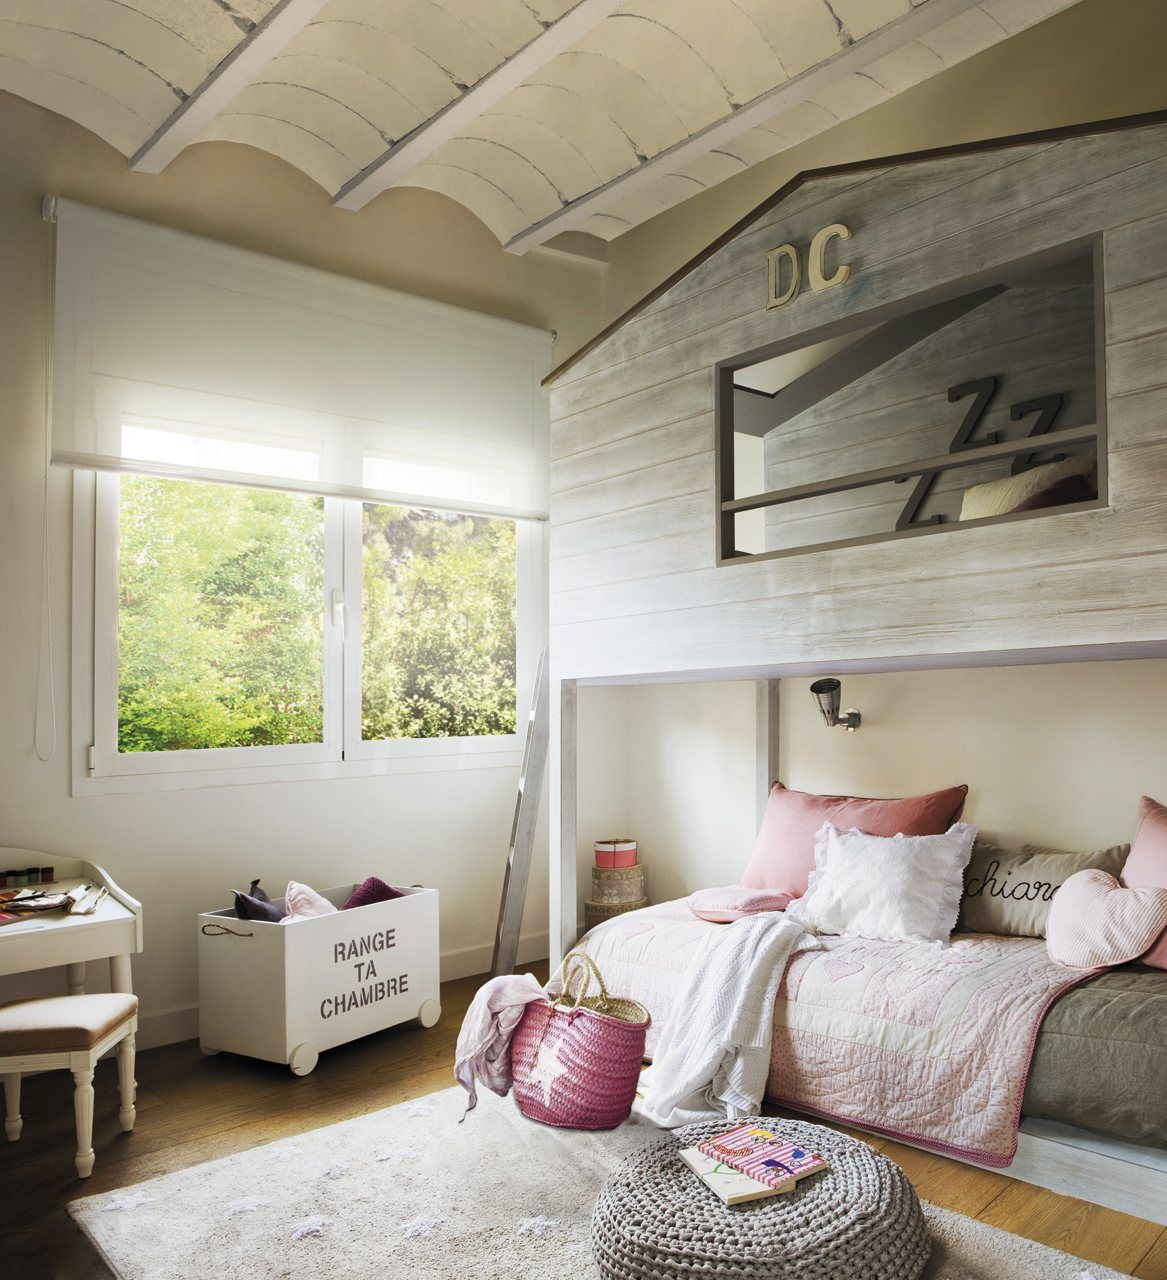 A double height house in the bedroom